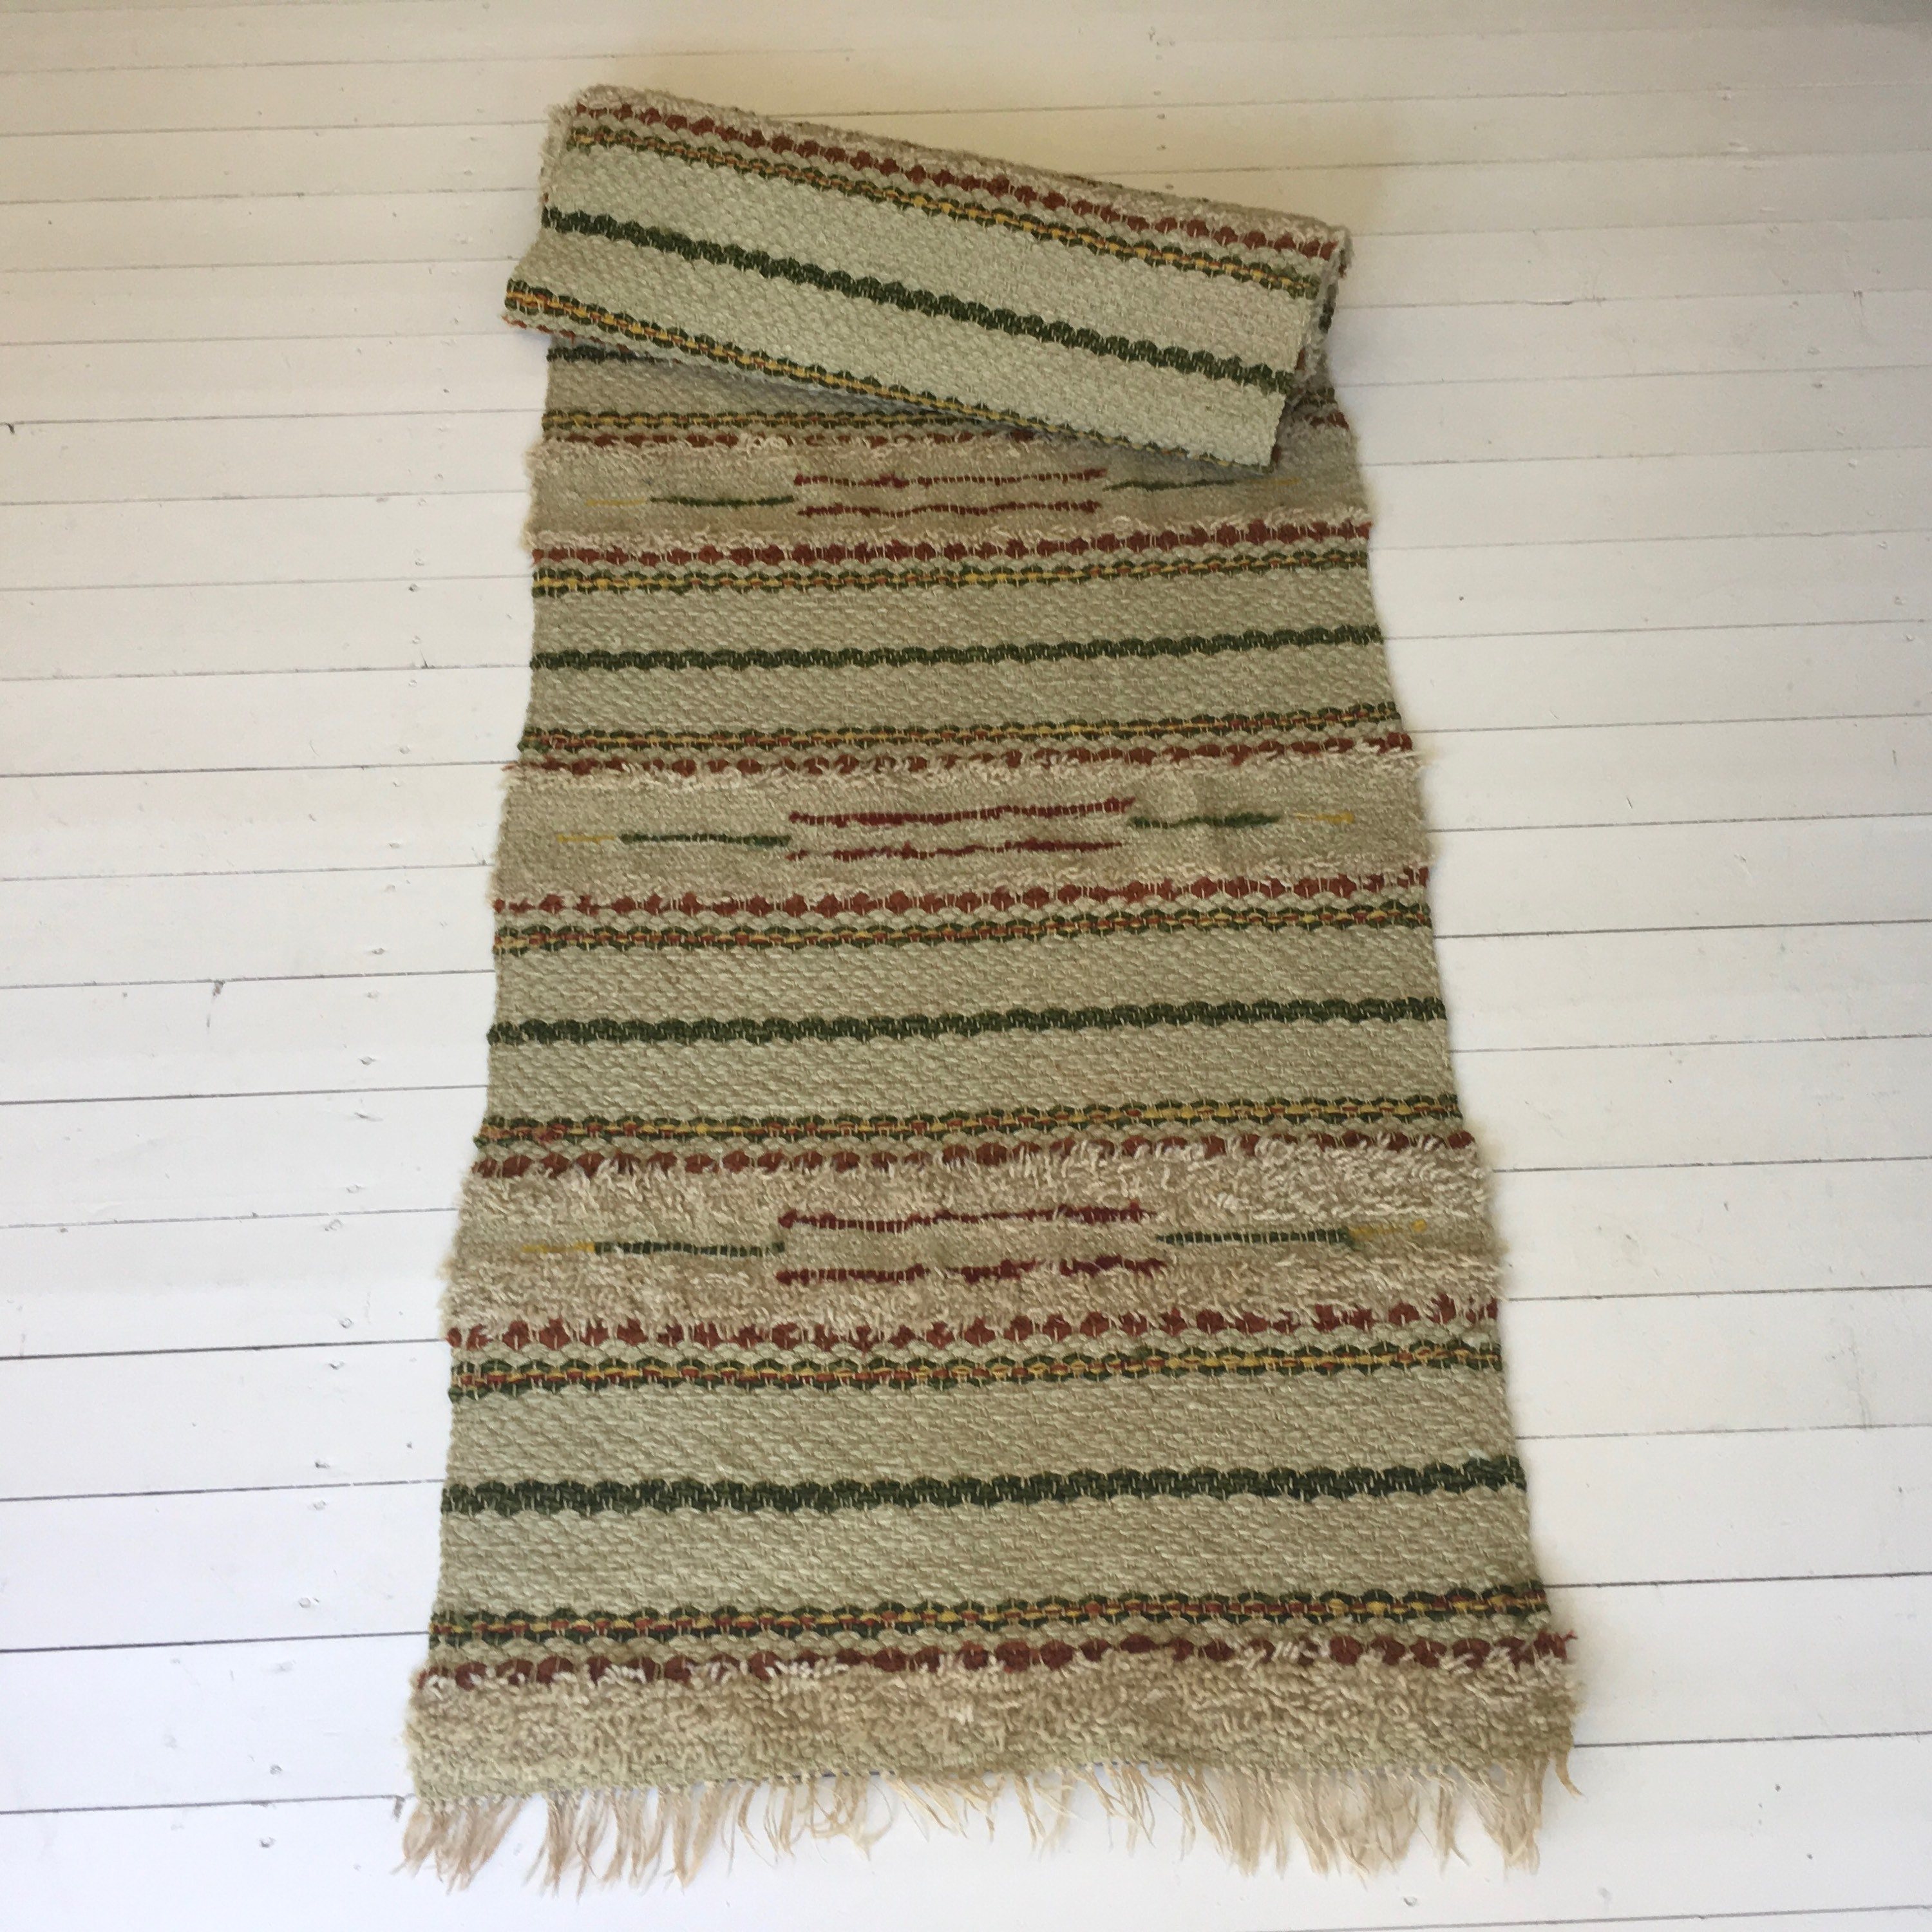 New Vintage Swedish Rag Rug in Green,Yellow and Brown Colored Stripey  UU59